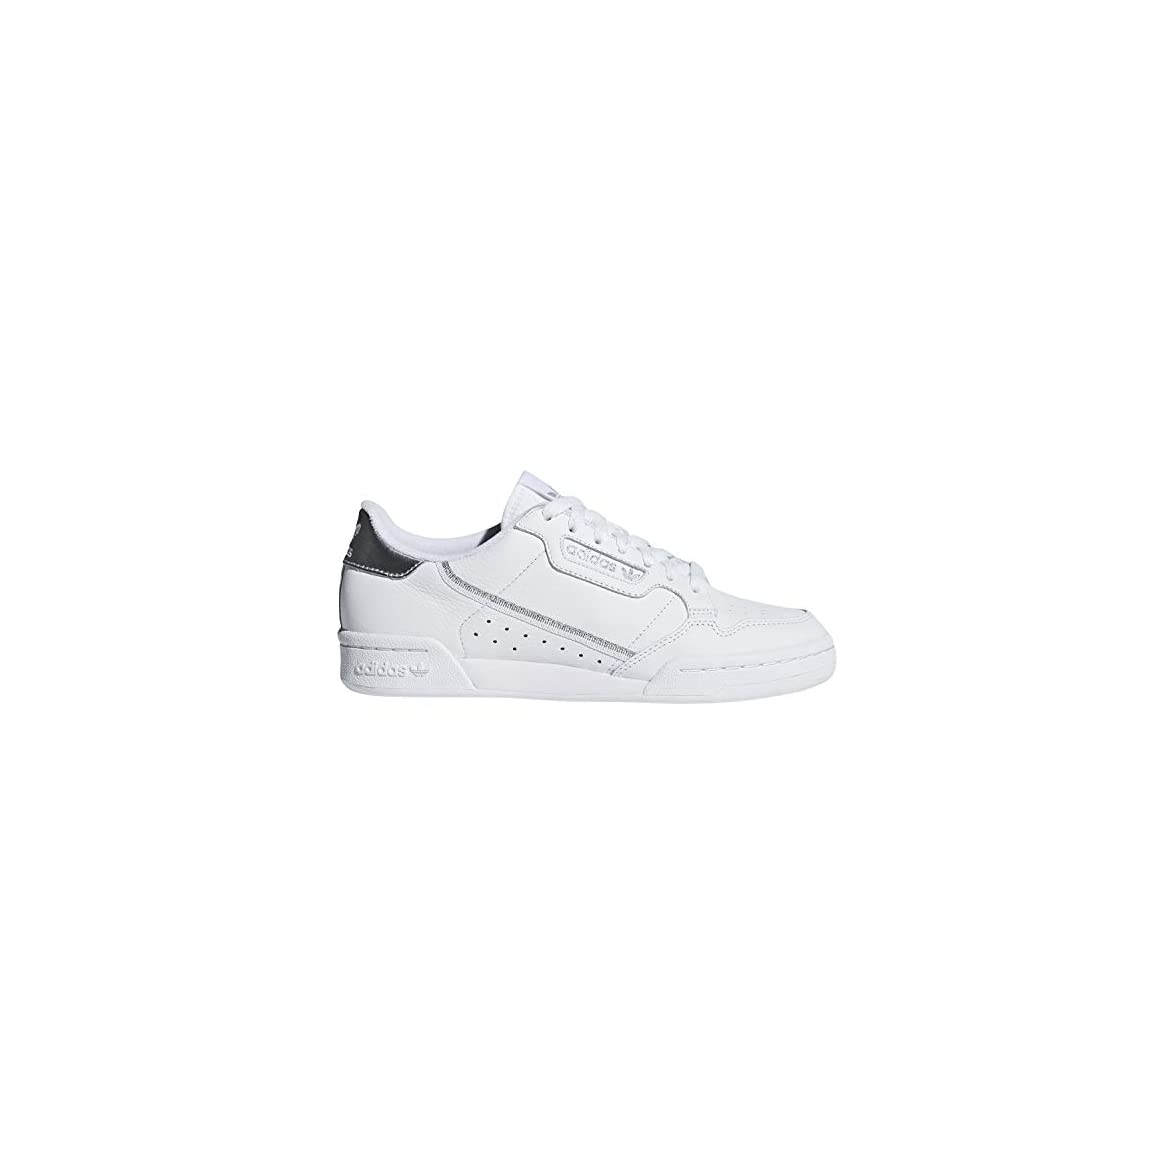 Adidas Continental Bianco argento Ee8925 Sneakers Per Donna